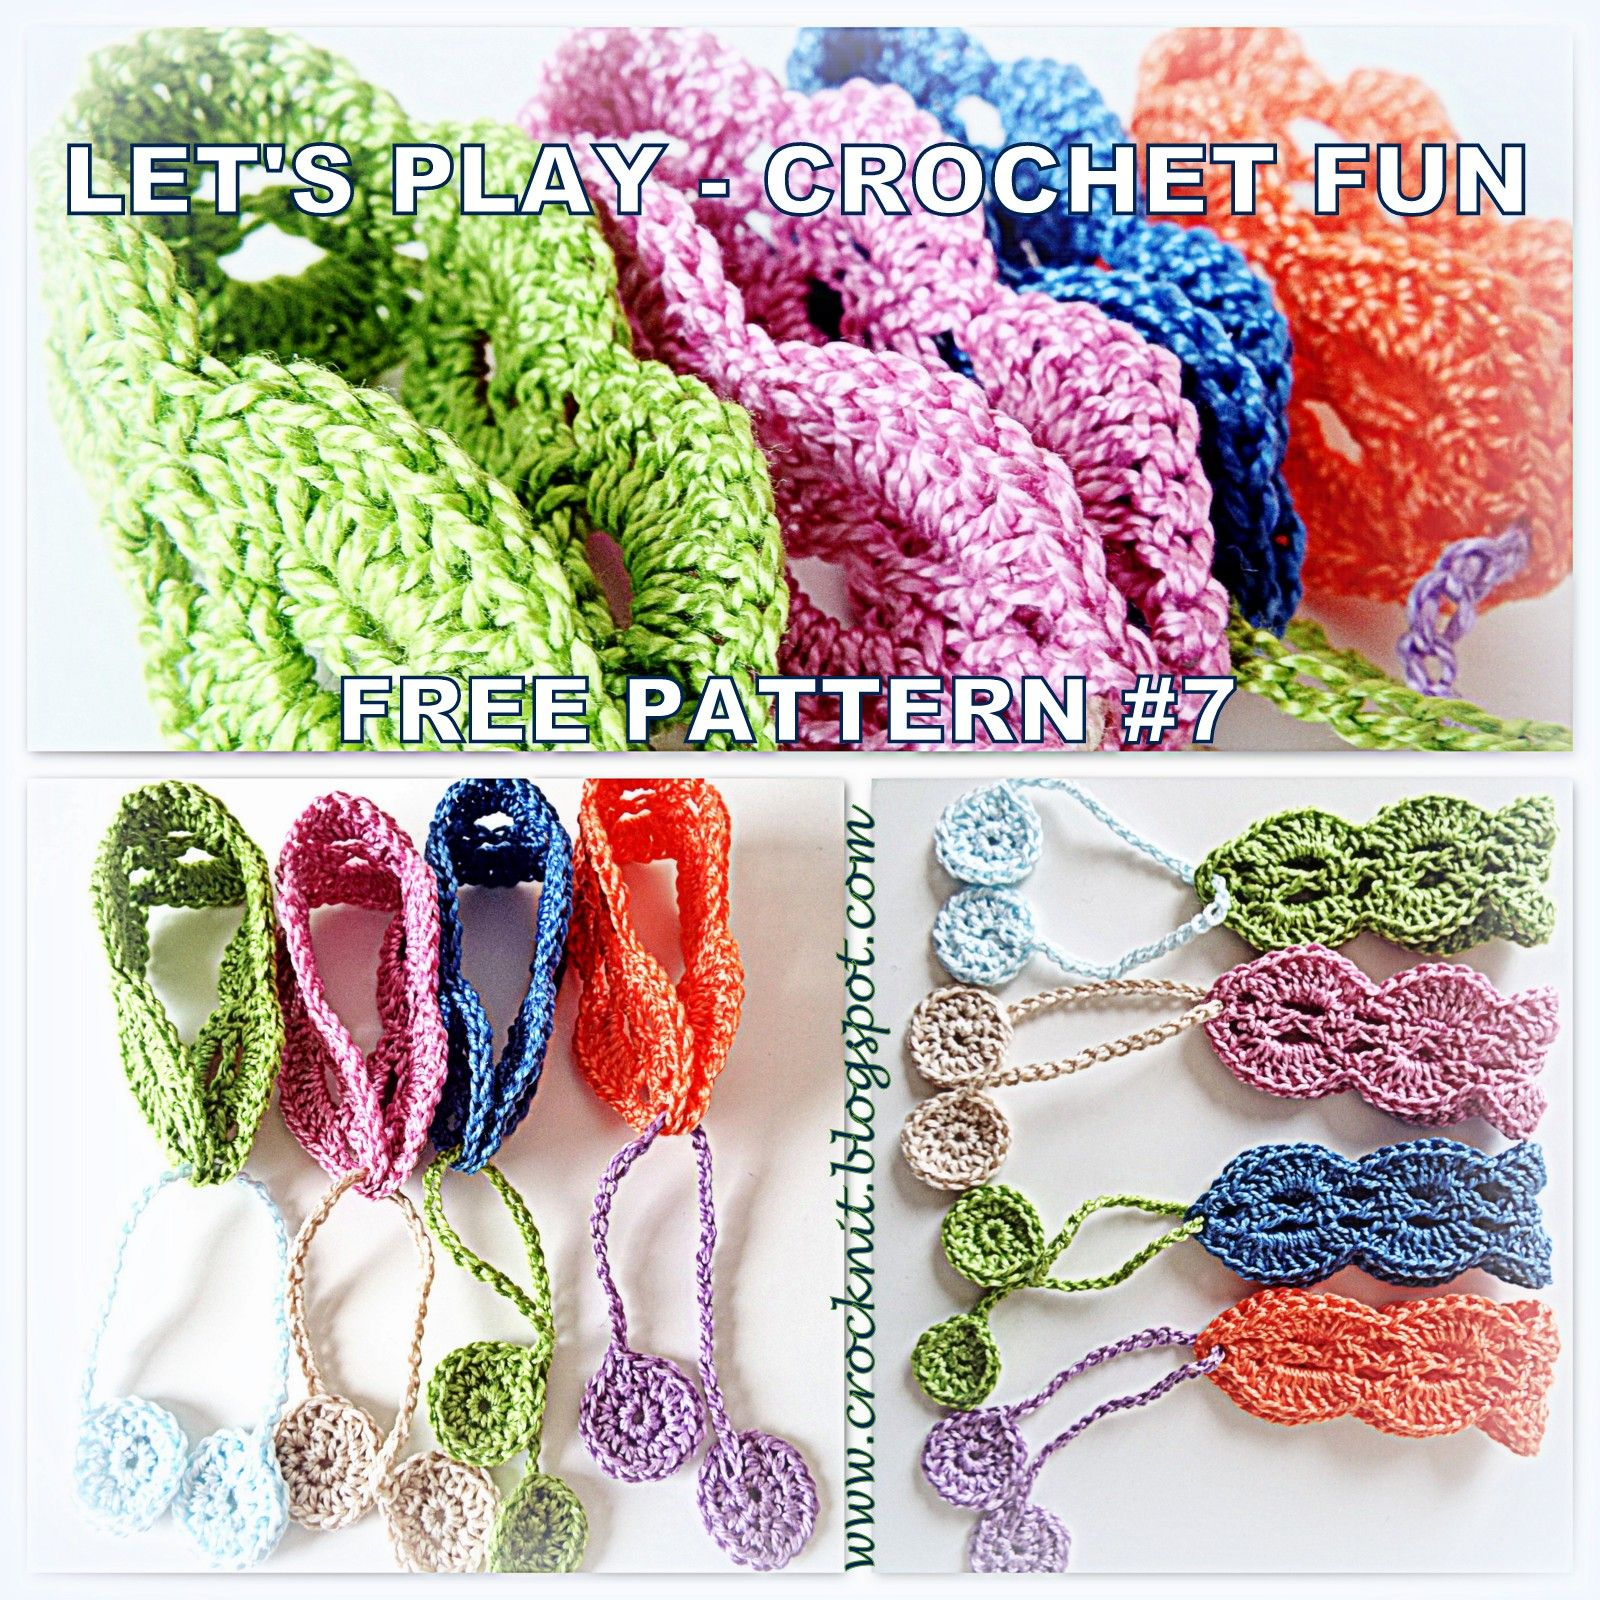 Crochet: Patterns, Articles, eBooks, Magazines, Videos